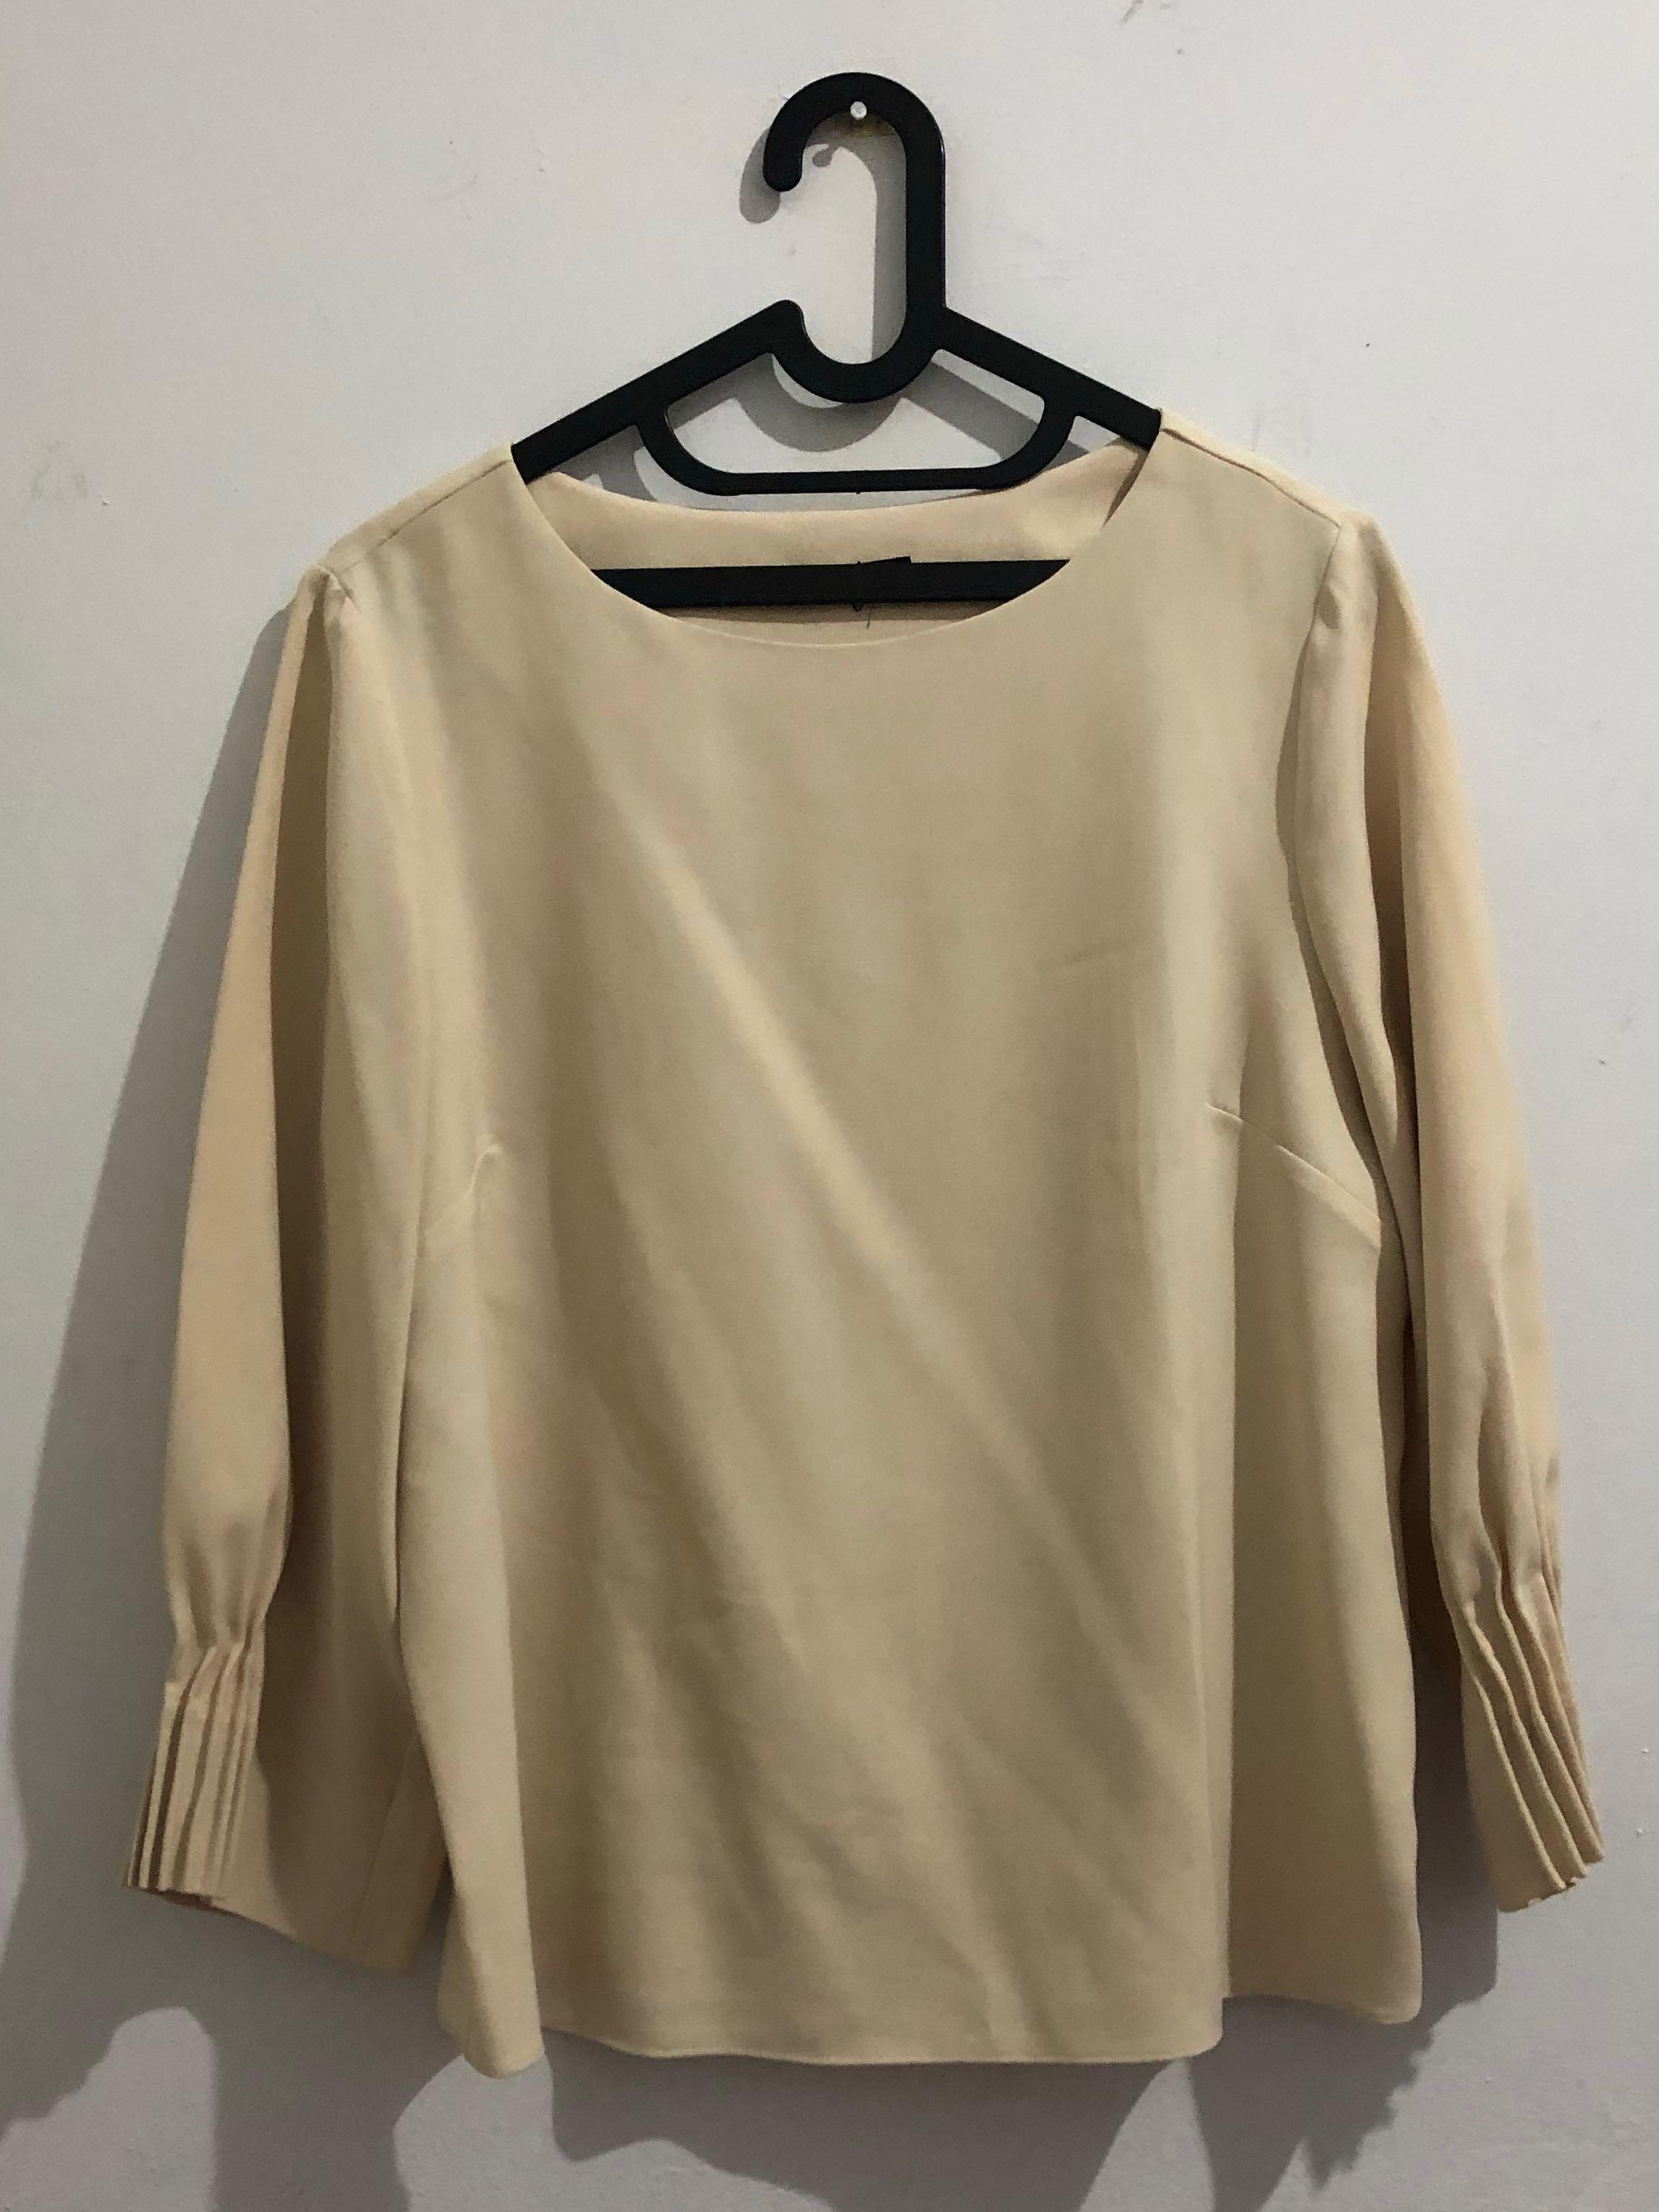 Blouse nude / beige / off white / creme